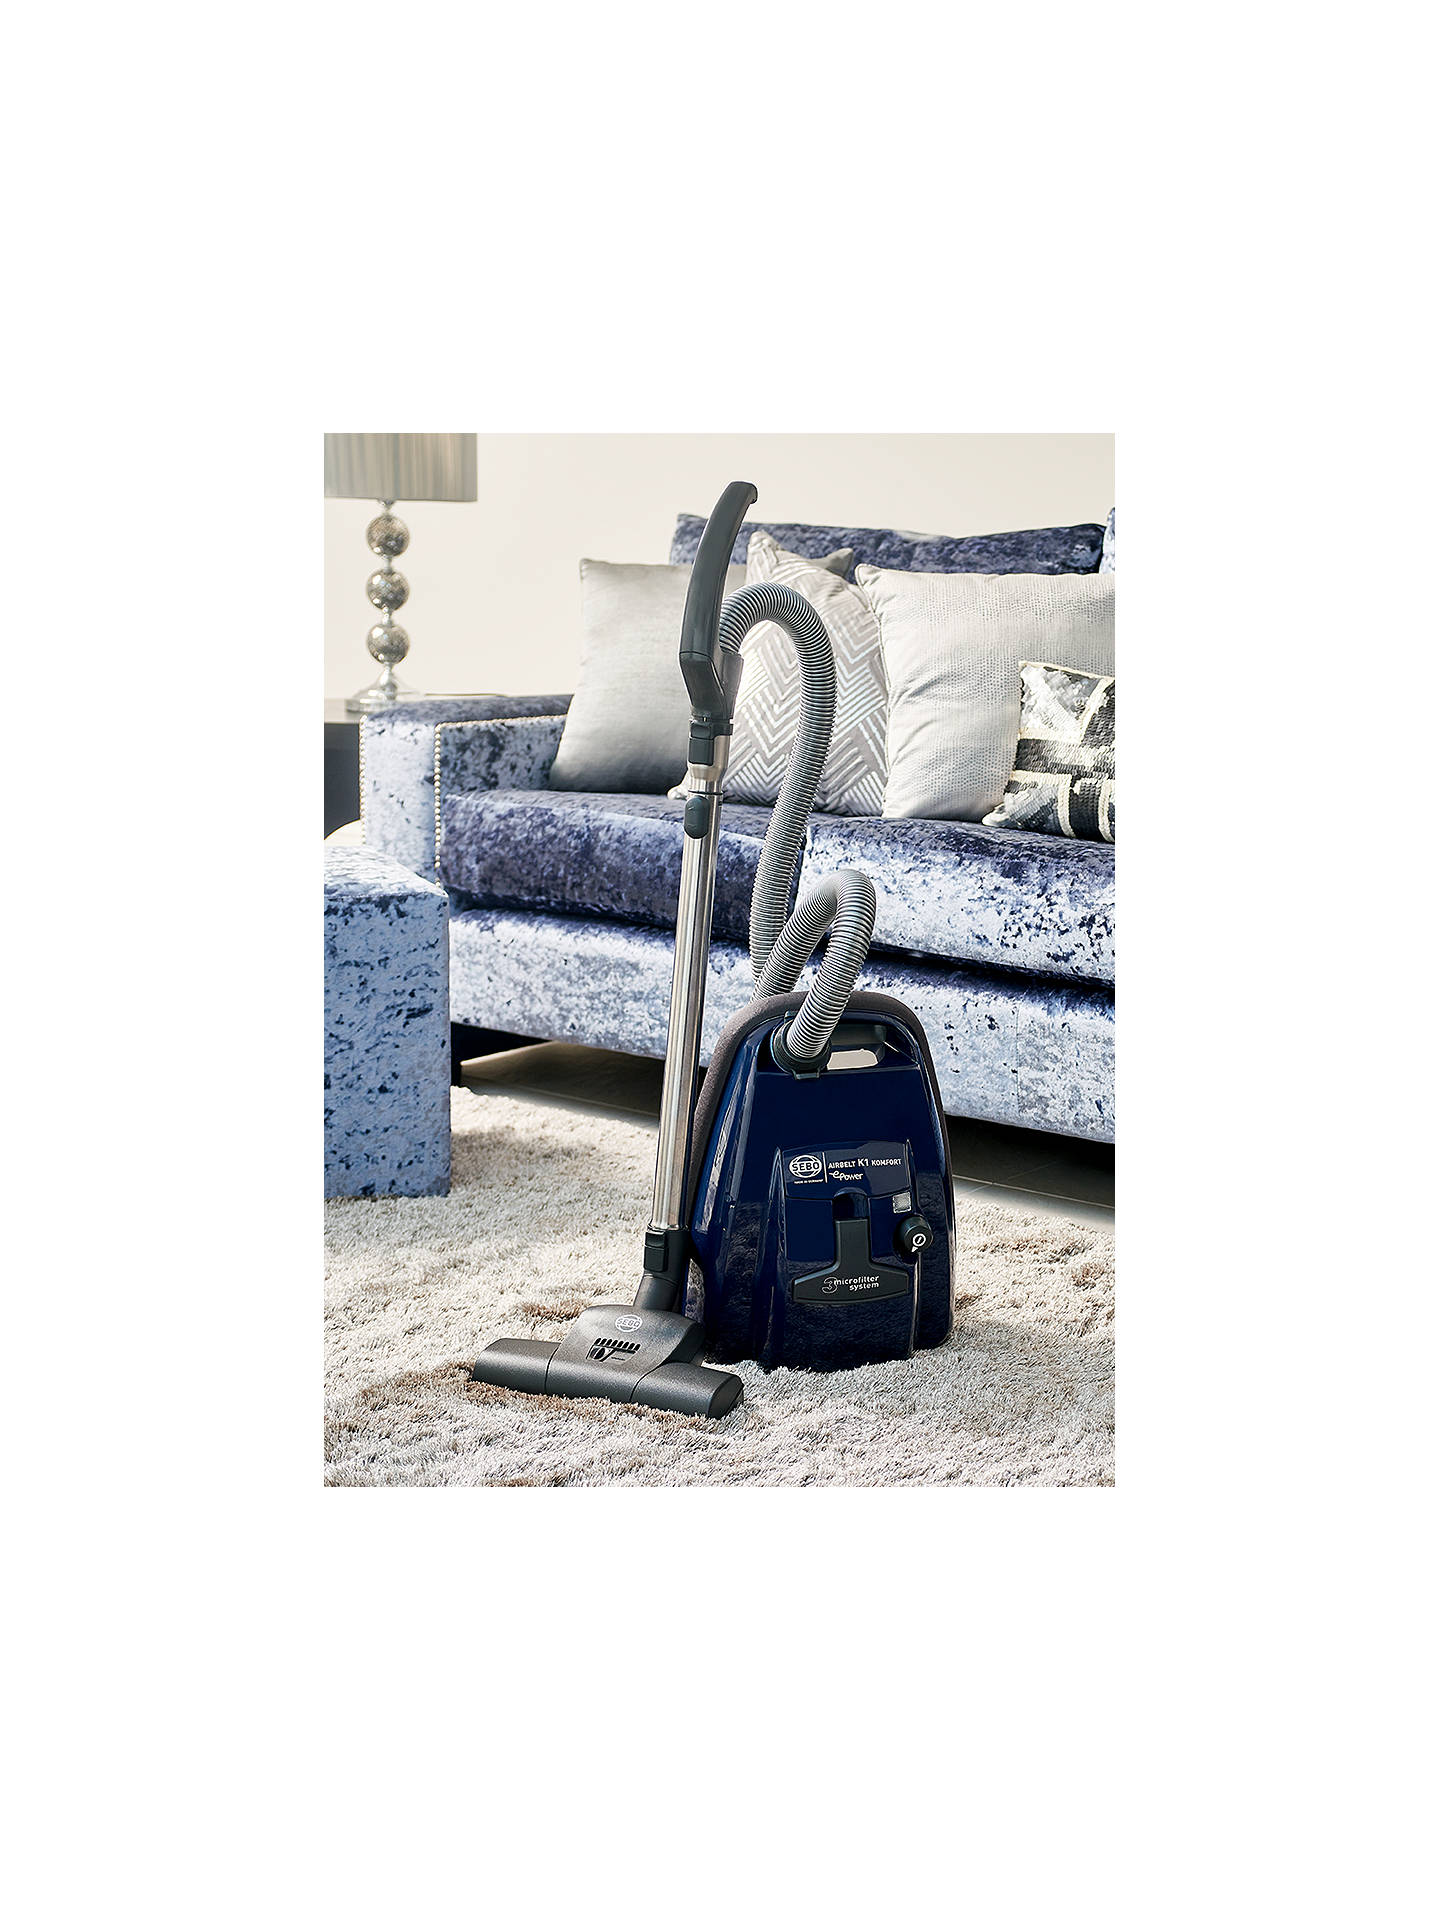 BuySEBO K1 Airbelt Komfort ePower Vacuum Cleaner, Blue Online at johnlewis.com